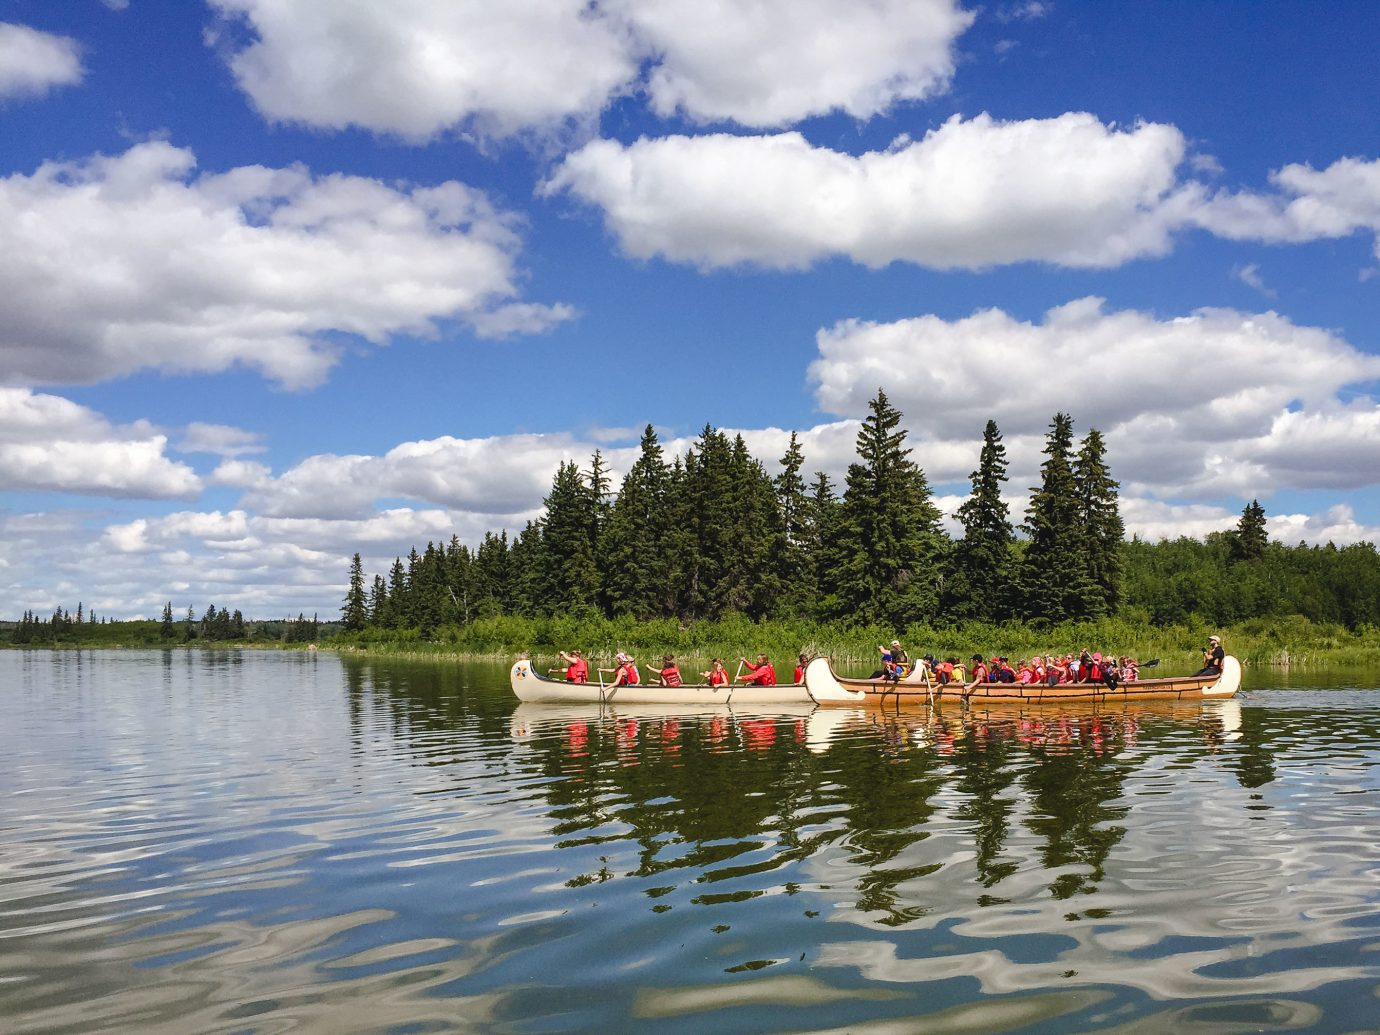 Alberta Canada Road Trips reflection cloud sky waterway water Nature body of water Lake tree loch Boat River reservoir water transportation bank wetland shore water resources bayou landscape vehicle plant lake district inlet pond meteorological phenomenon watercraft rowing boating calm